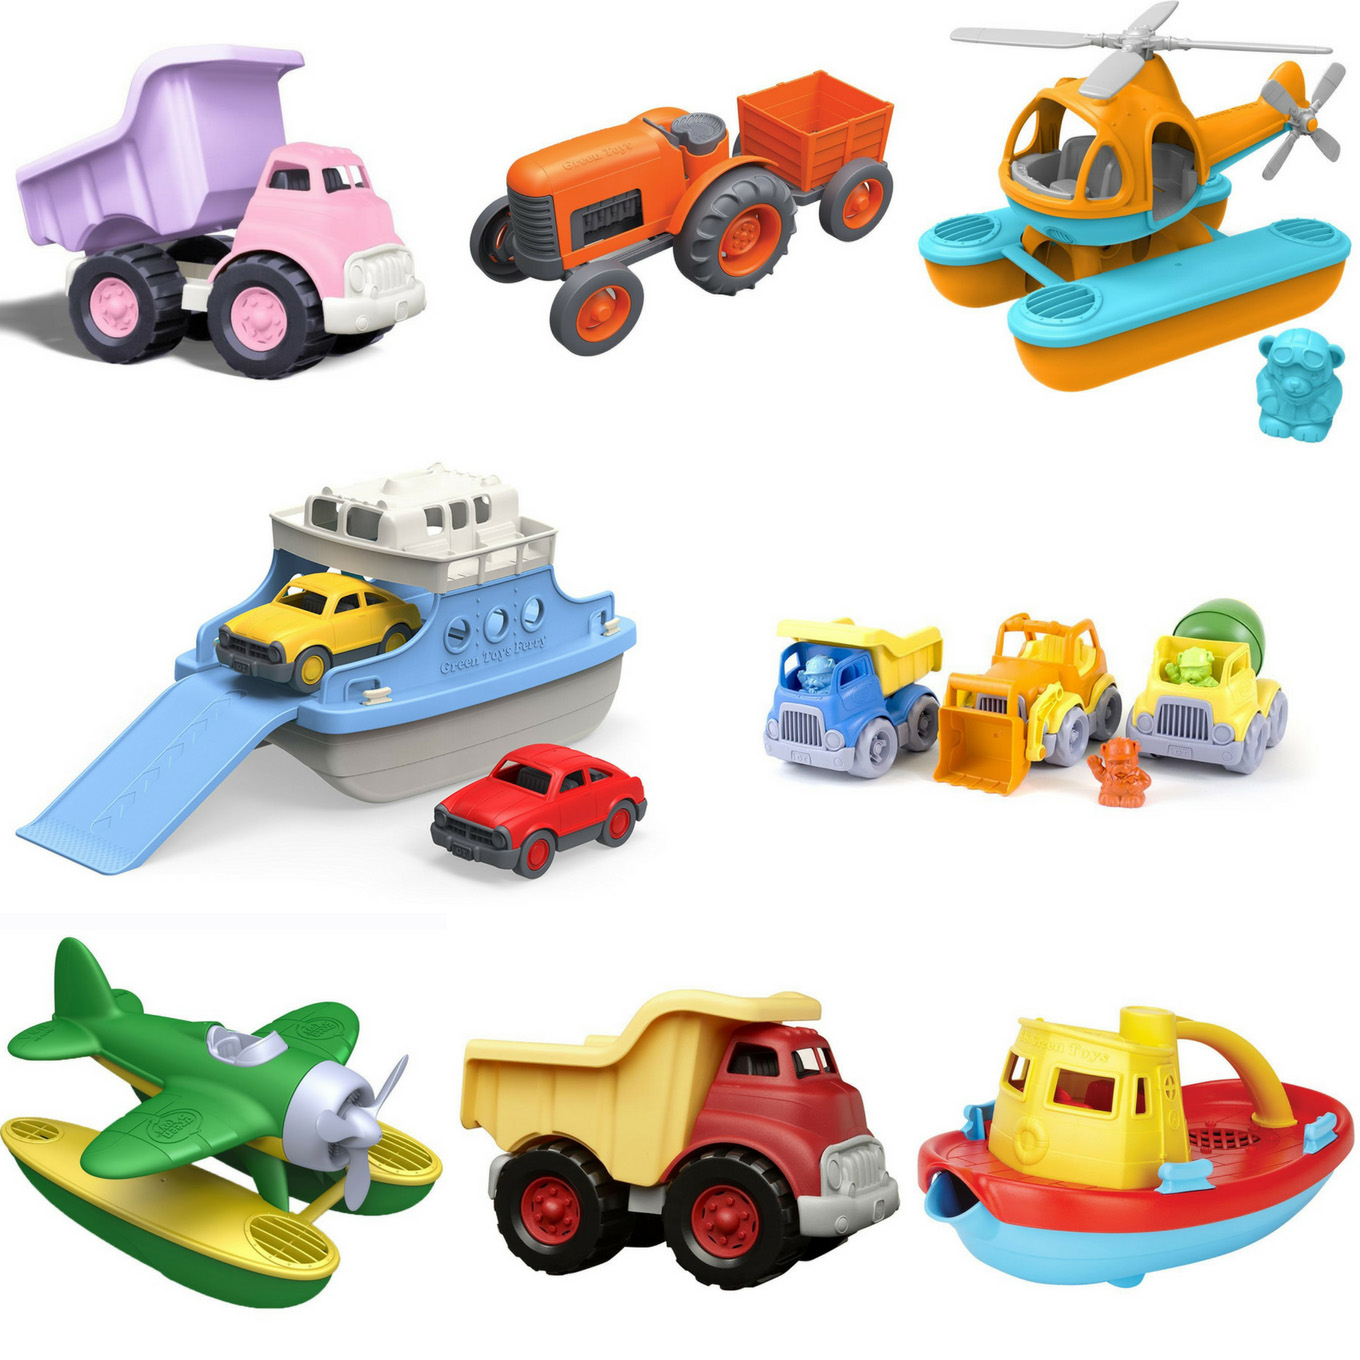 The Best Trucks, Boats, and Tractors for Sand Play